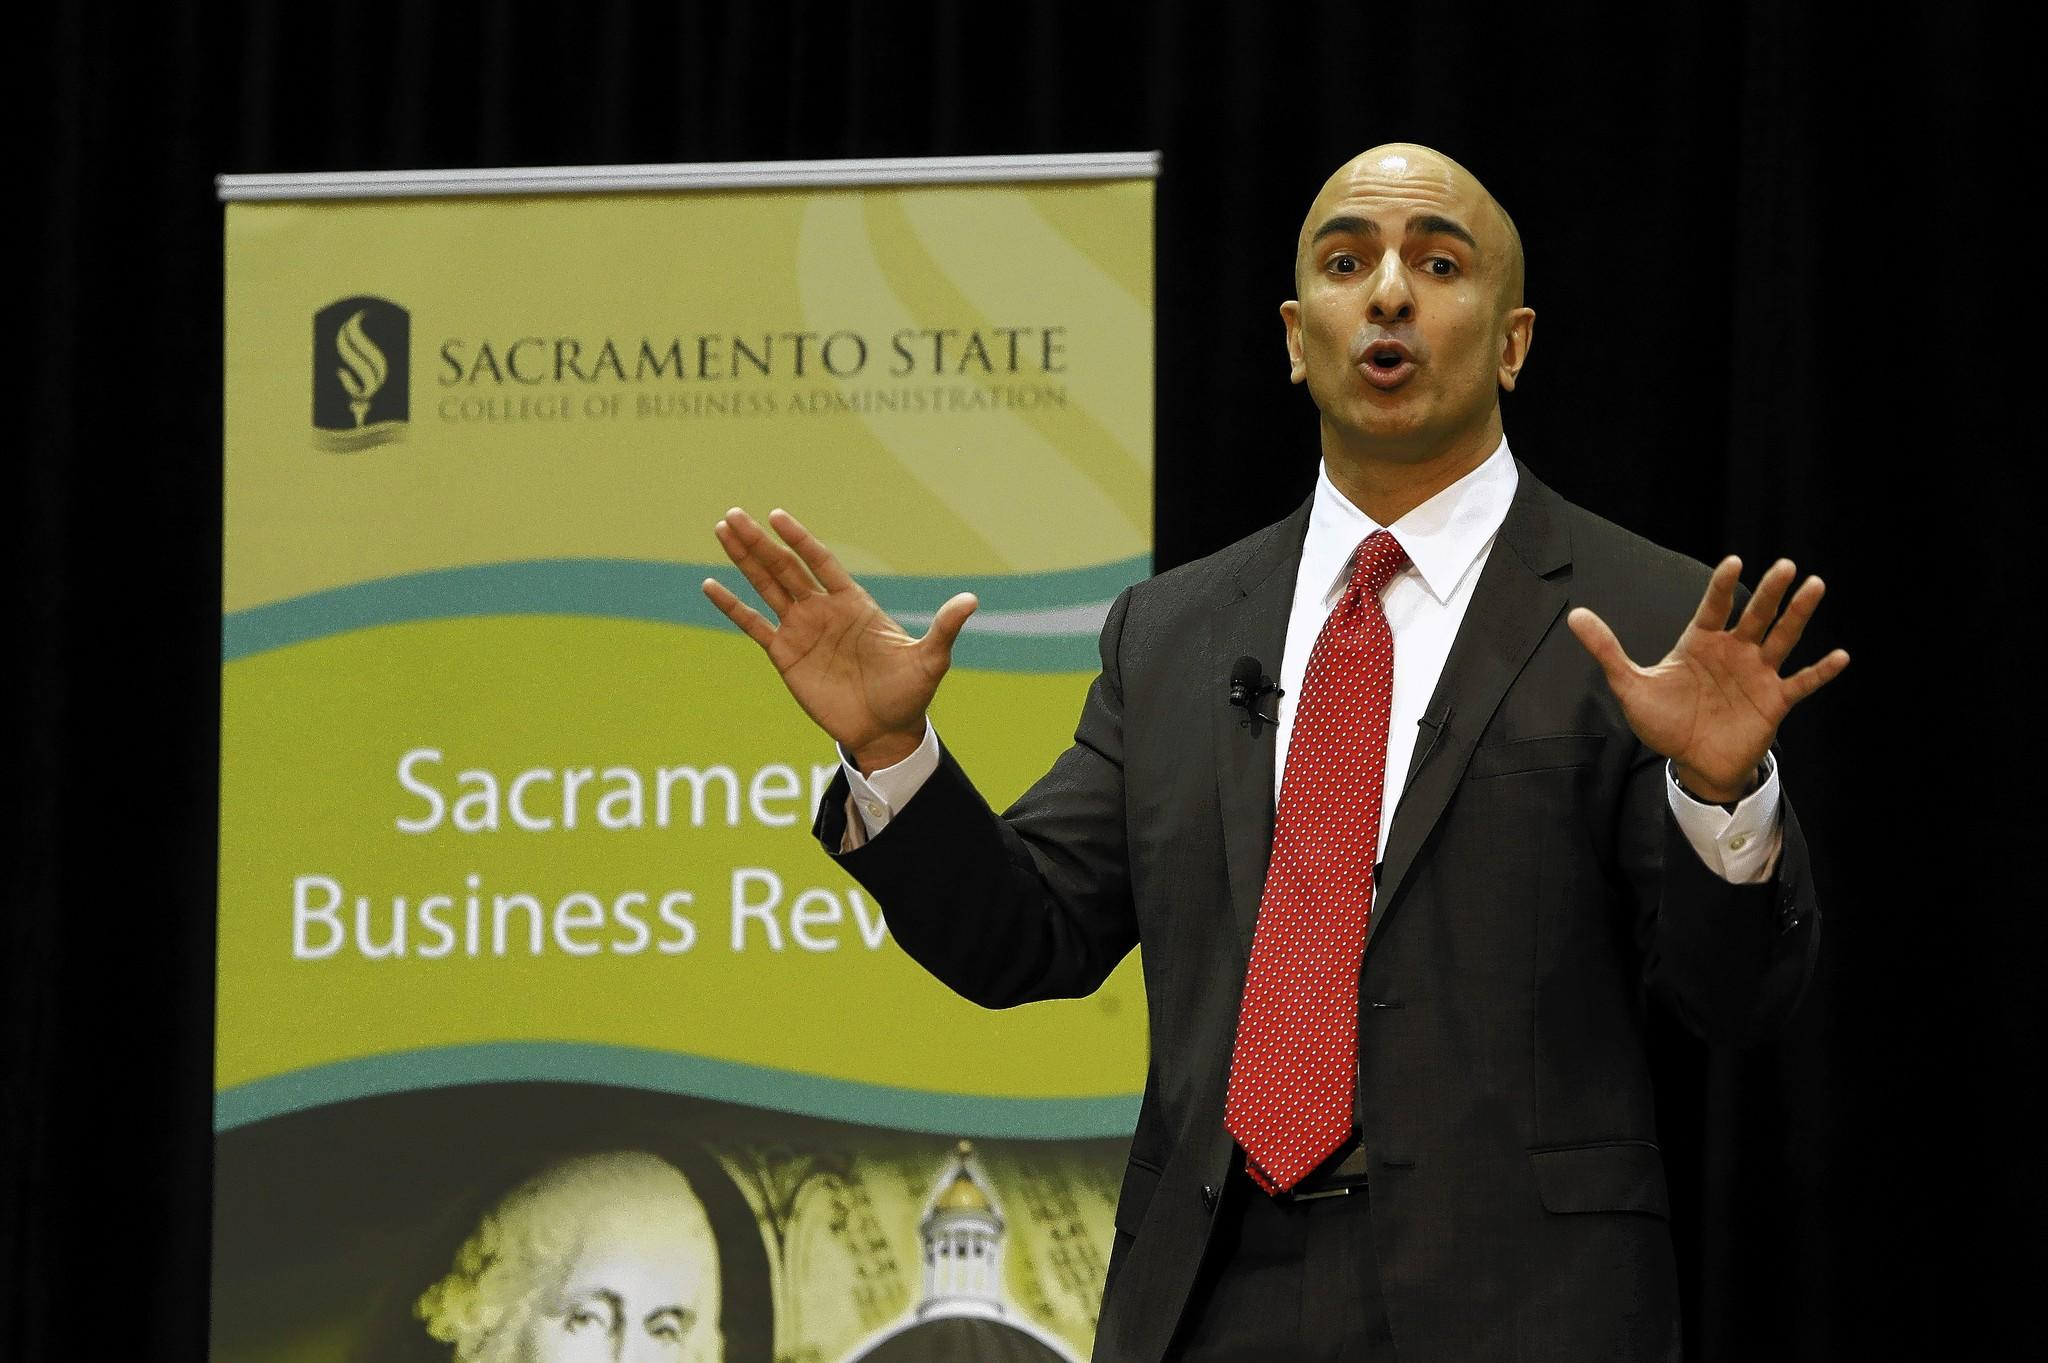 Neel Kashkari announces his candidacy for California governor while giving the keynote speech at the Sacramento Business Review at Cal State Sacramento. He said his platform will be jobs and education.